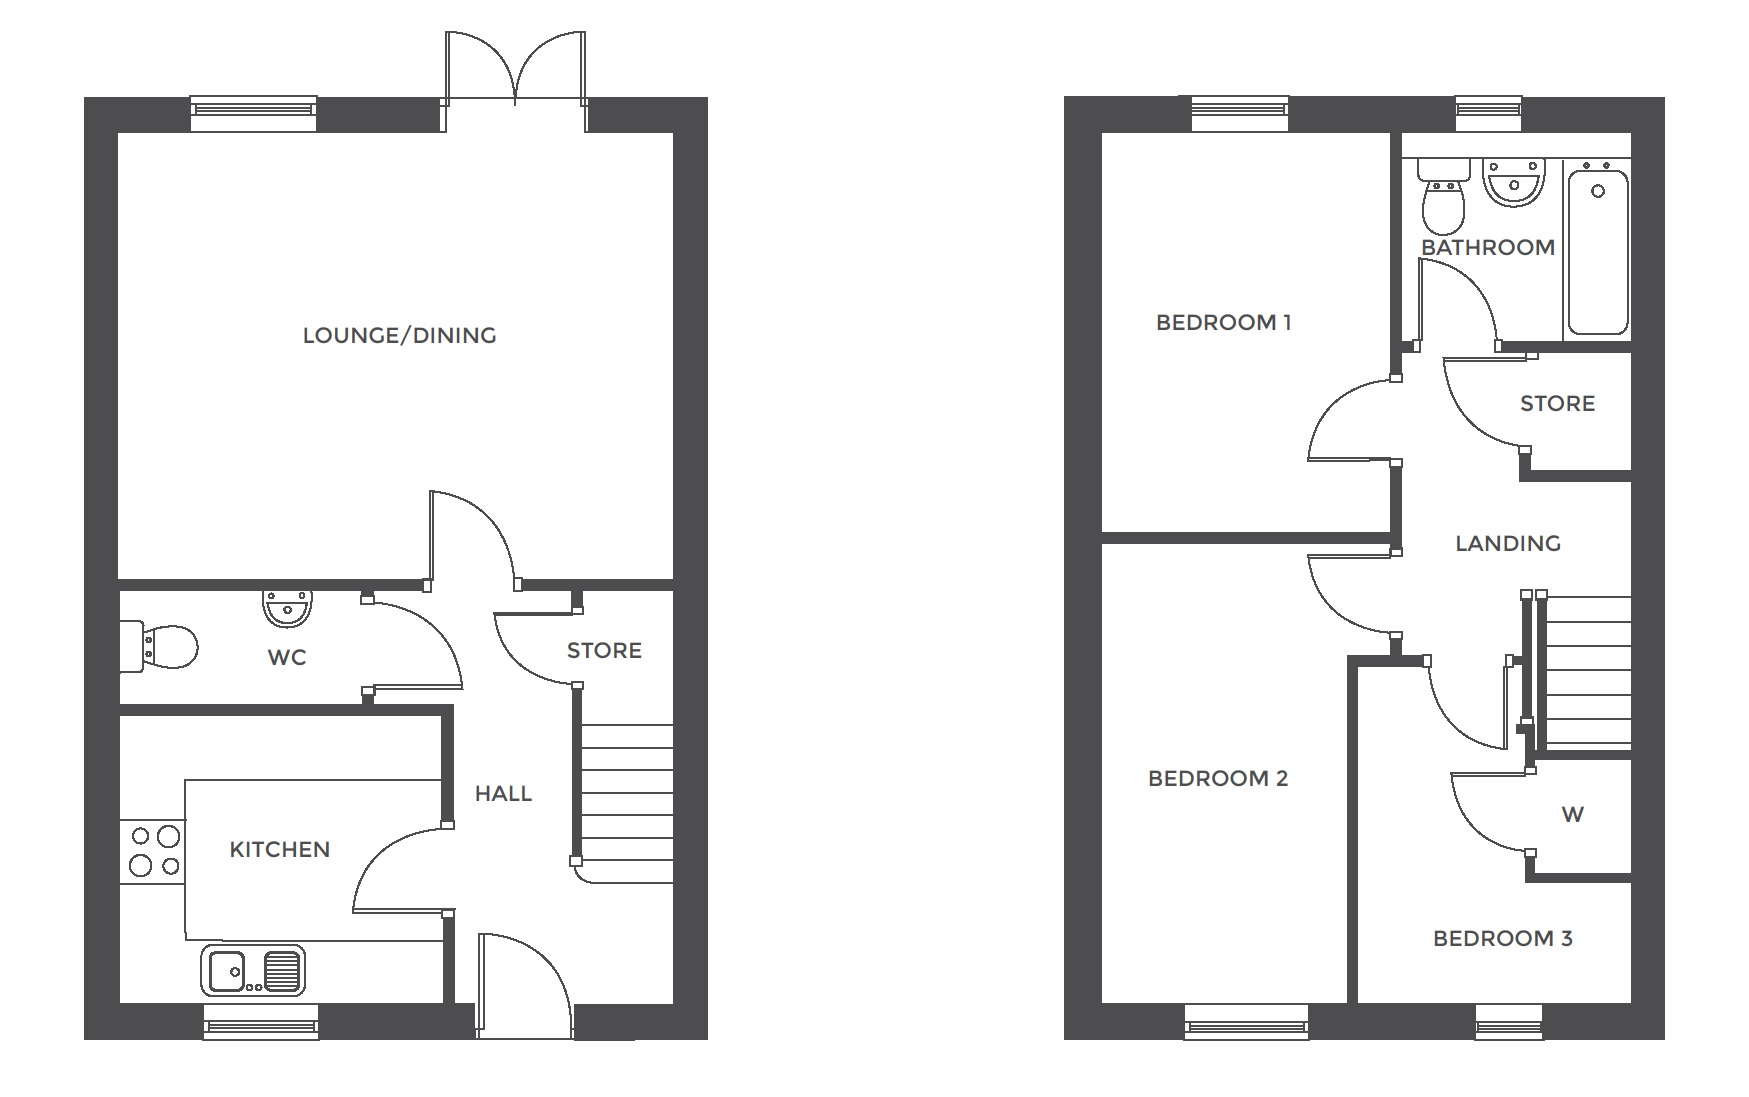 Repington Walk, Plot 20 floor plan